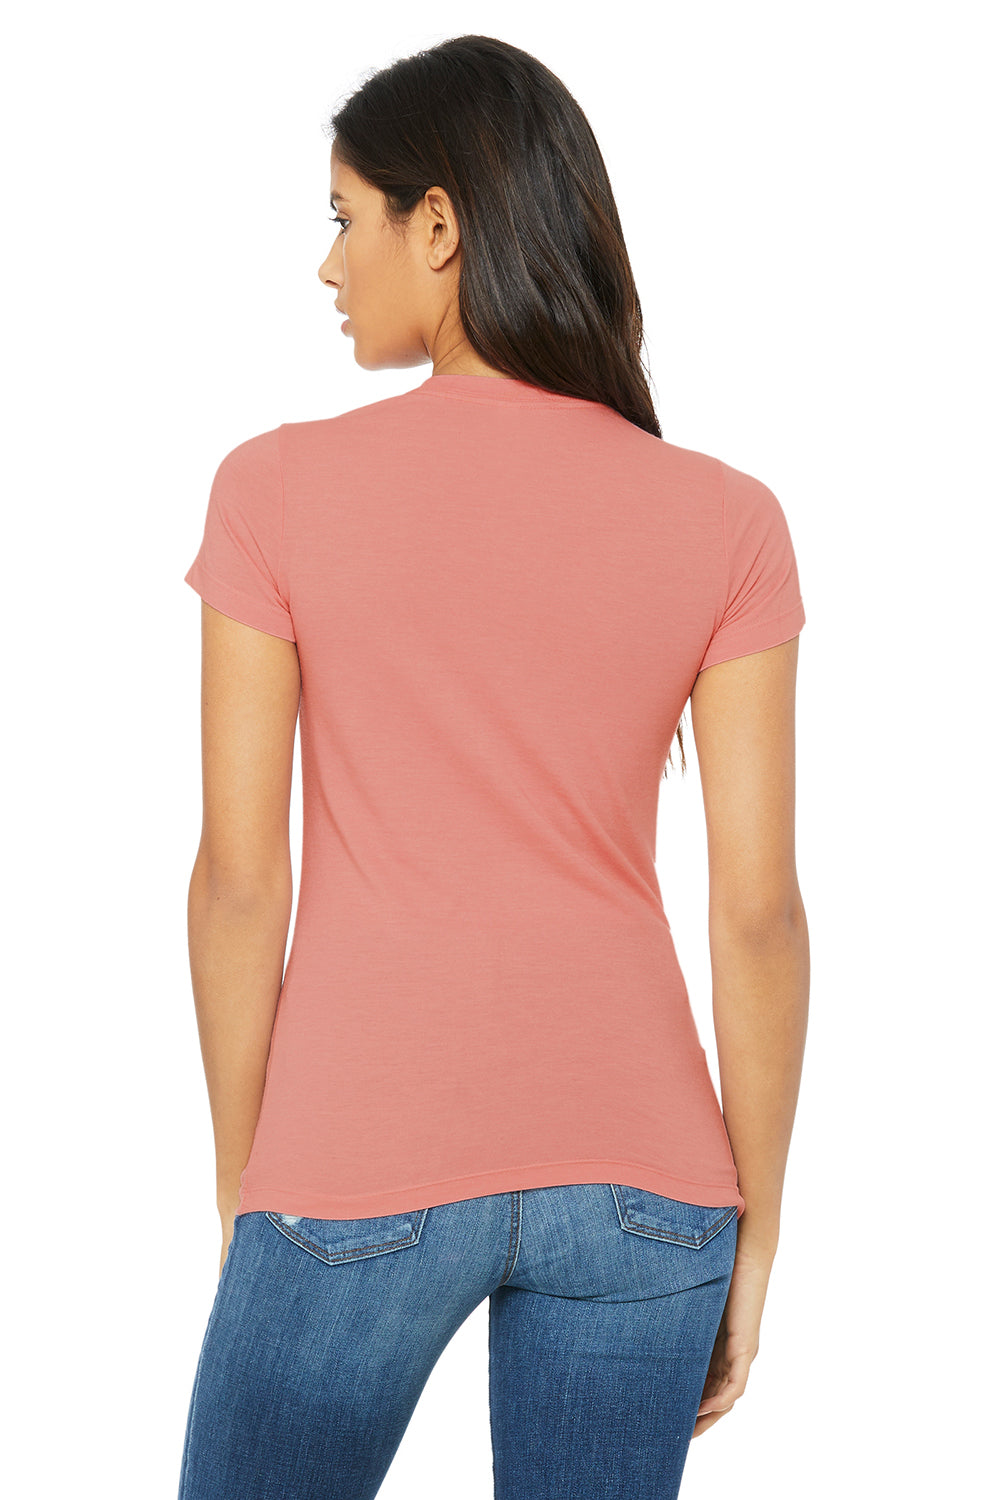 Bella + Canvas 6004 Womens The Favorite Short Sleeve Crewneck T-Shirt Heather Pink Back